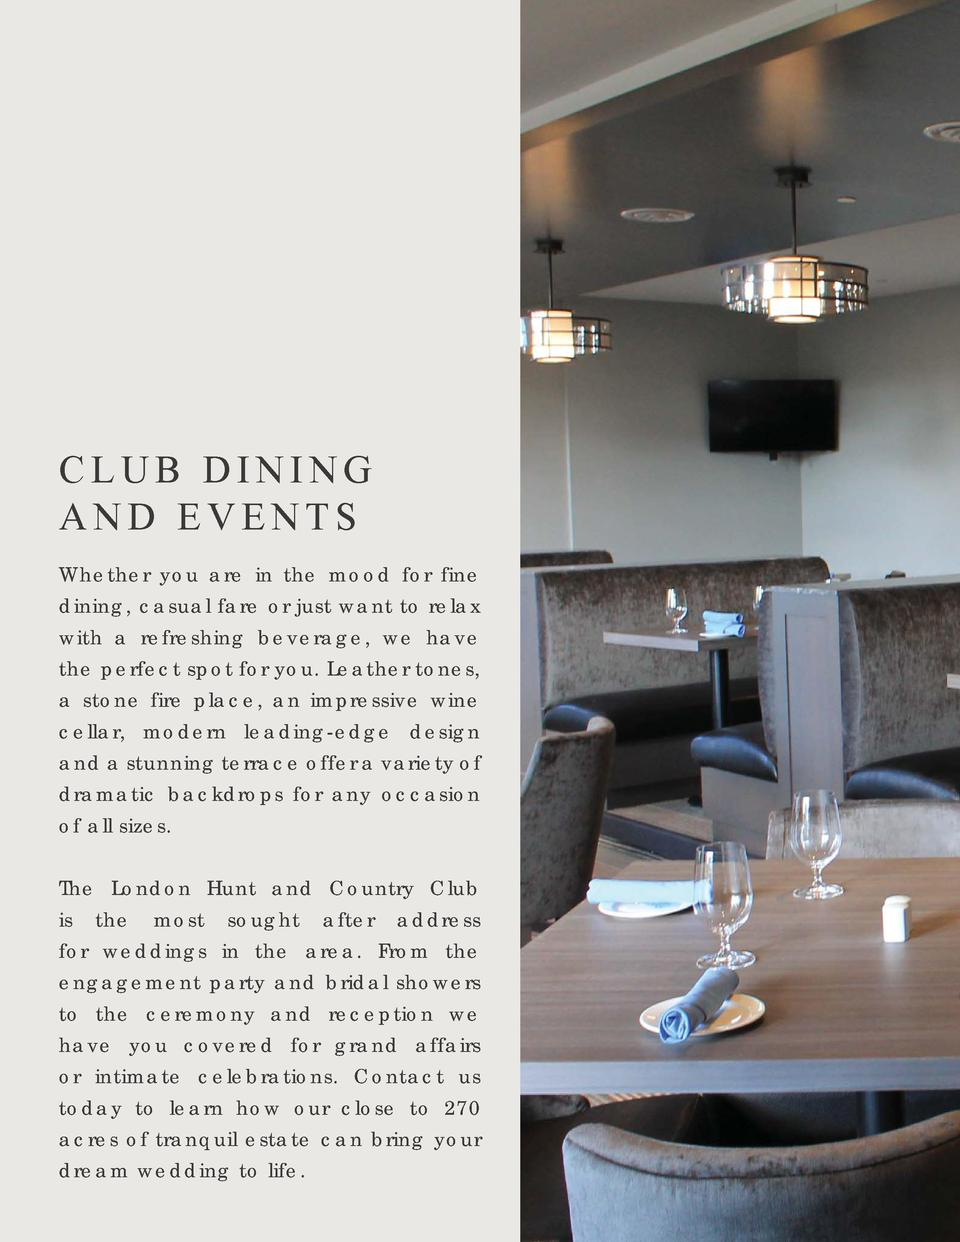 CLUB DINING AND EVENTS Whether you are in the mood for fine dining, casual fare or just want to relax with a refreshing be...